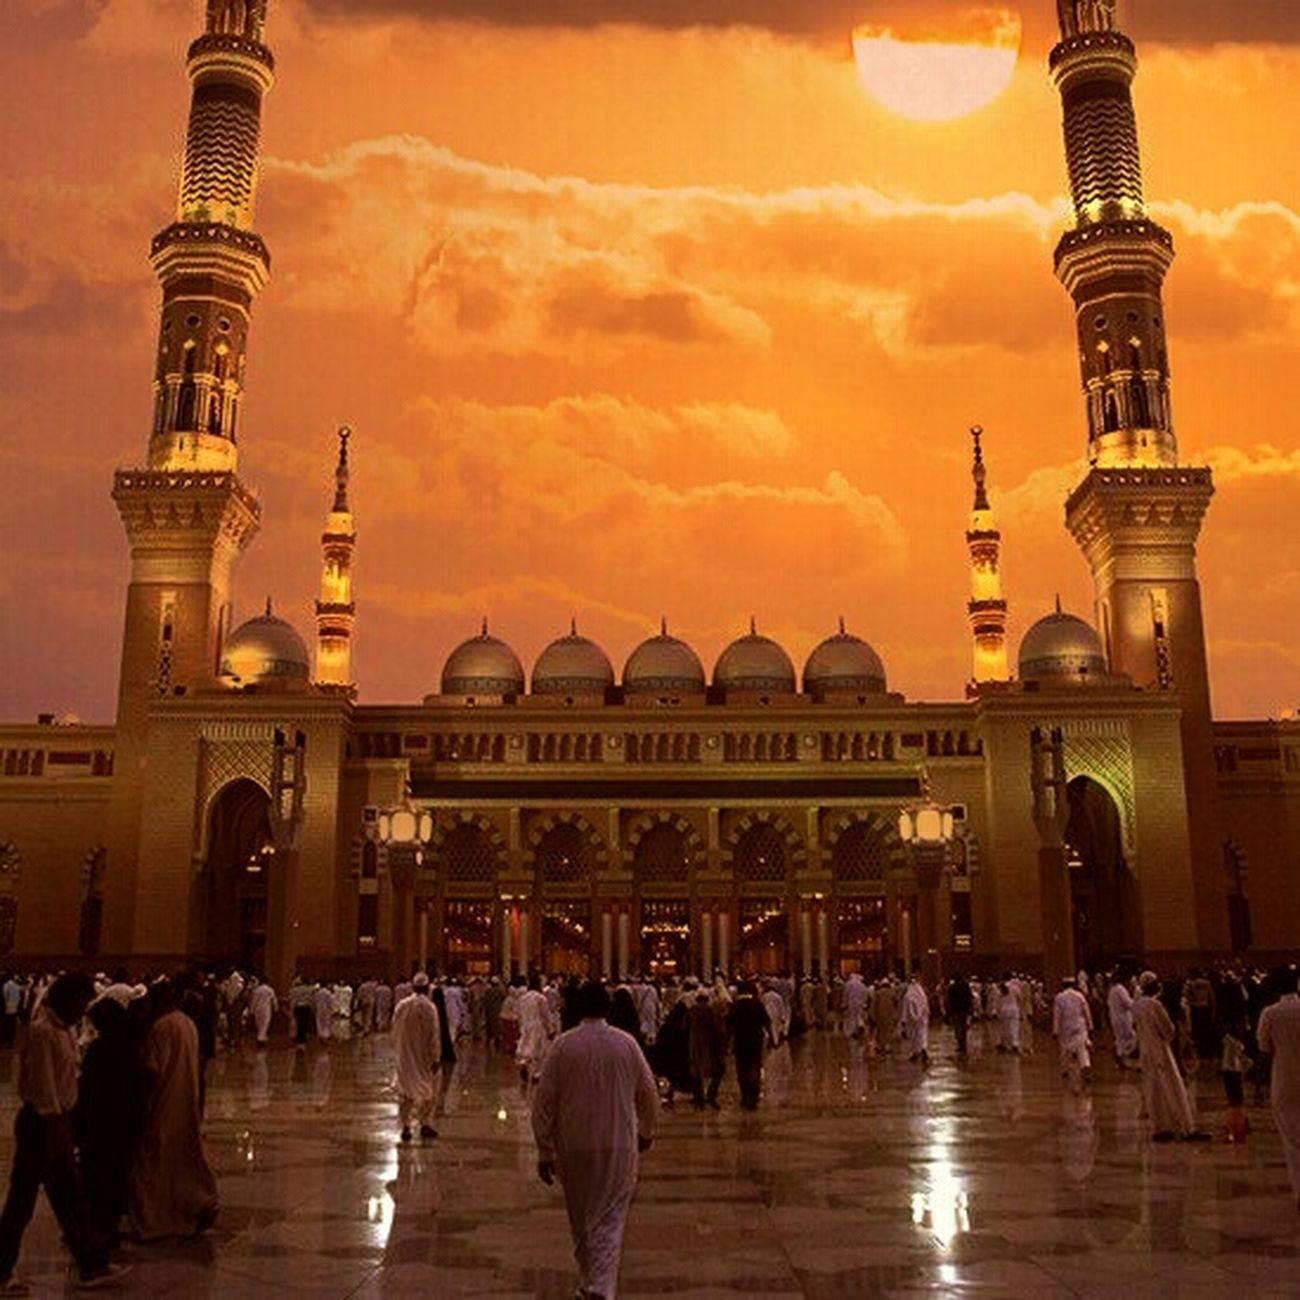 In medina ?? G_m Travel Kas